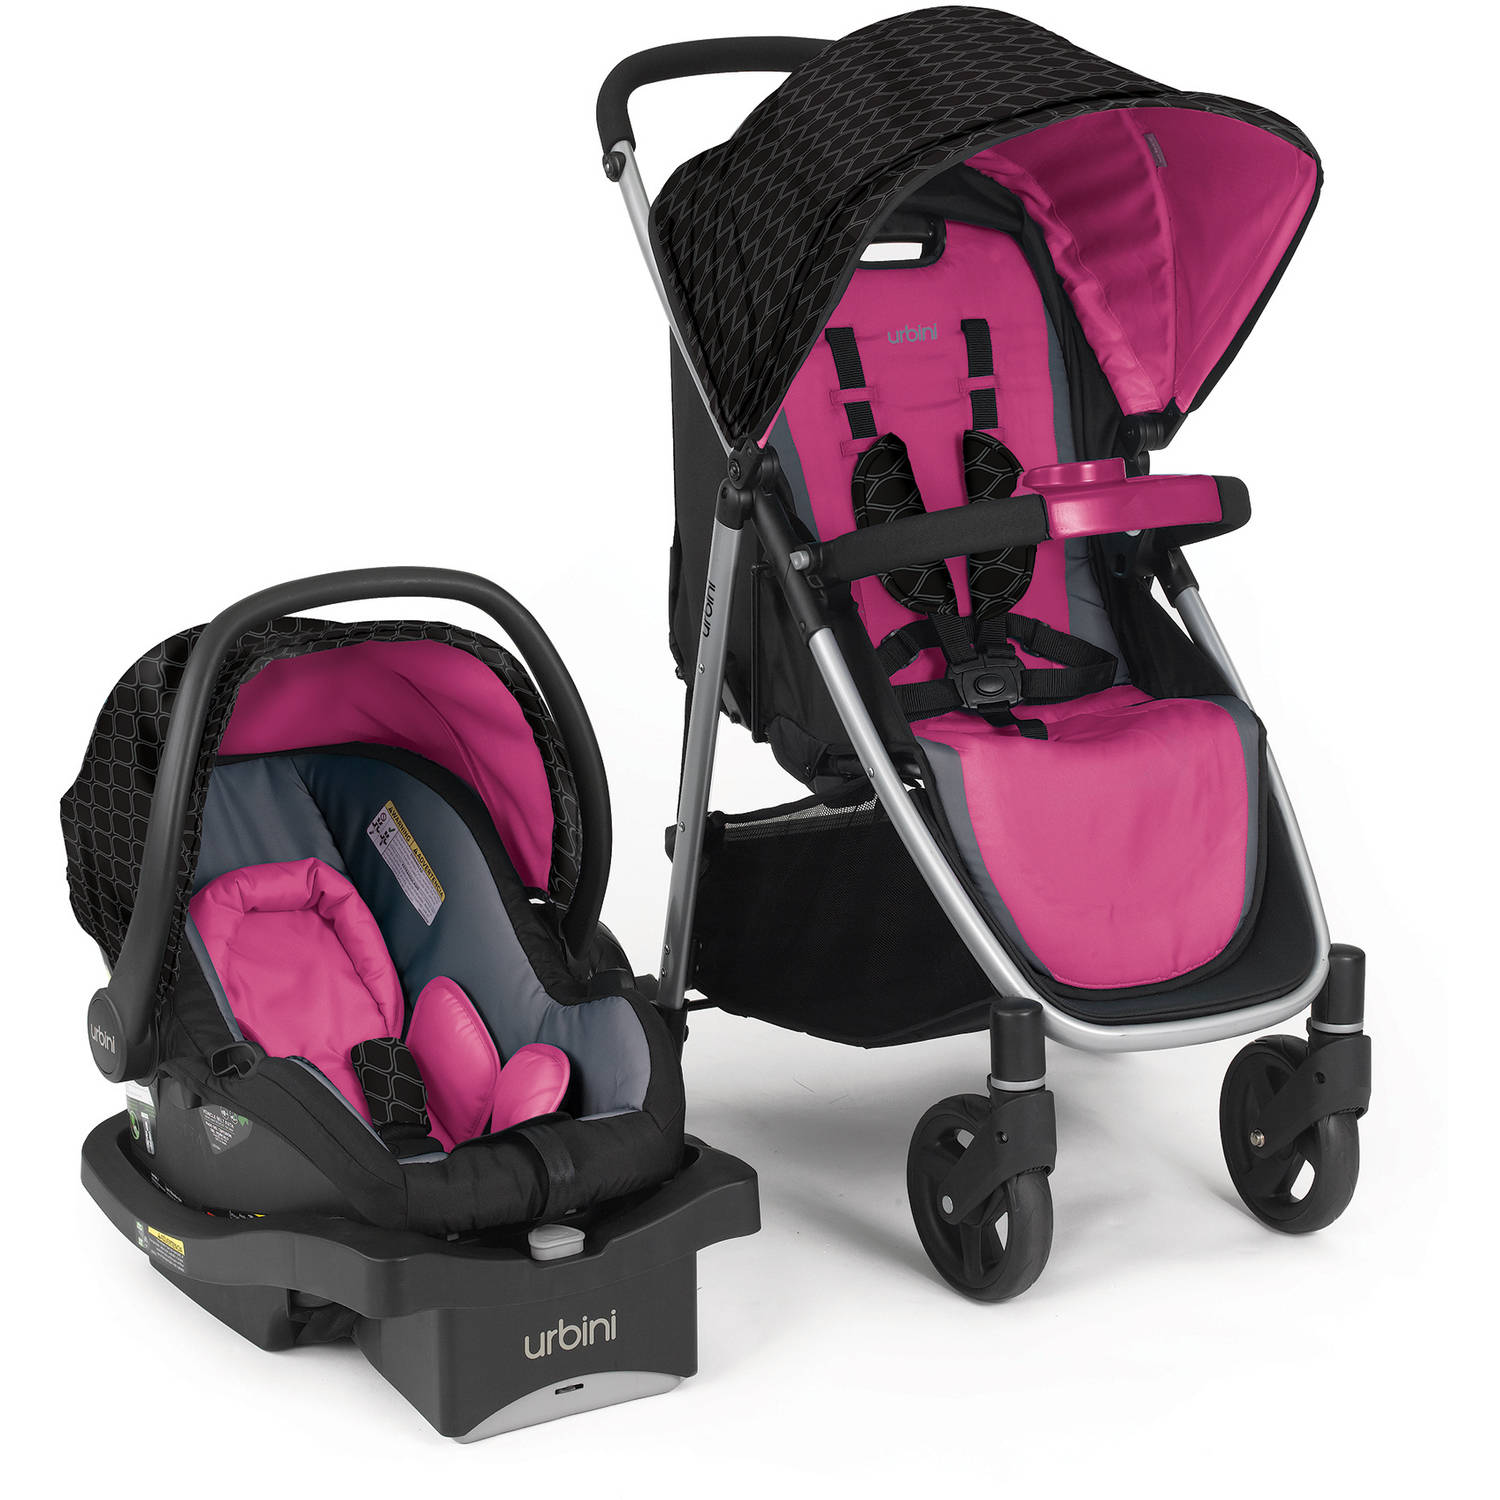 Urbini Turni 3 In 1 Travel System Walmart Com